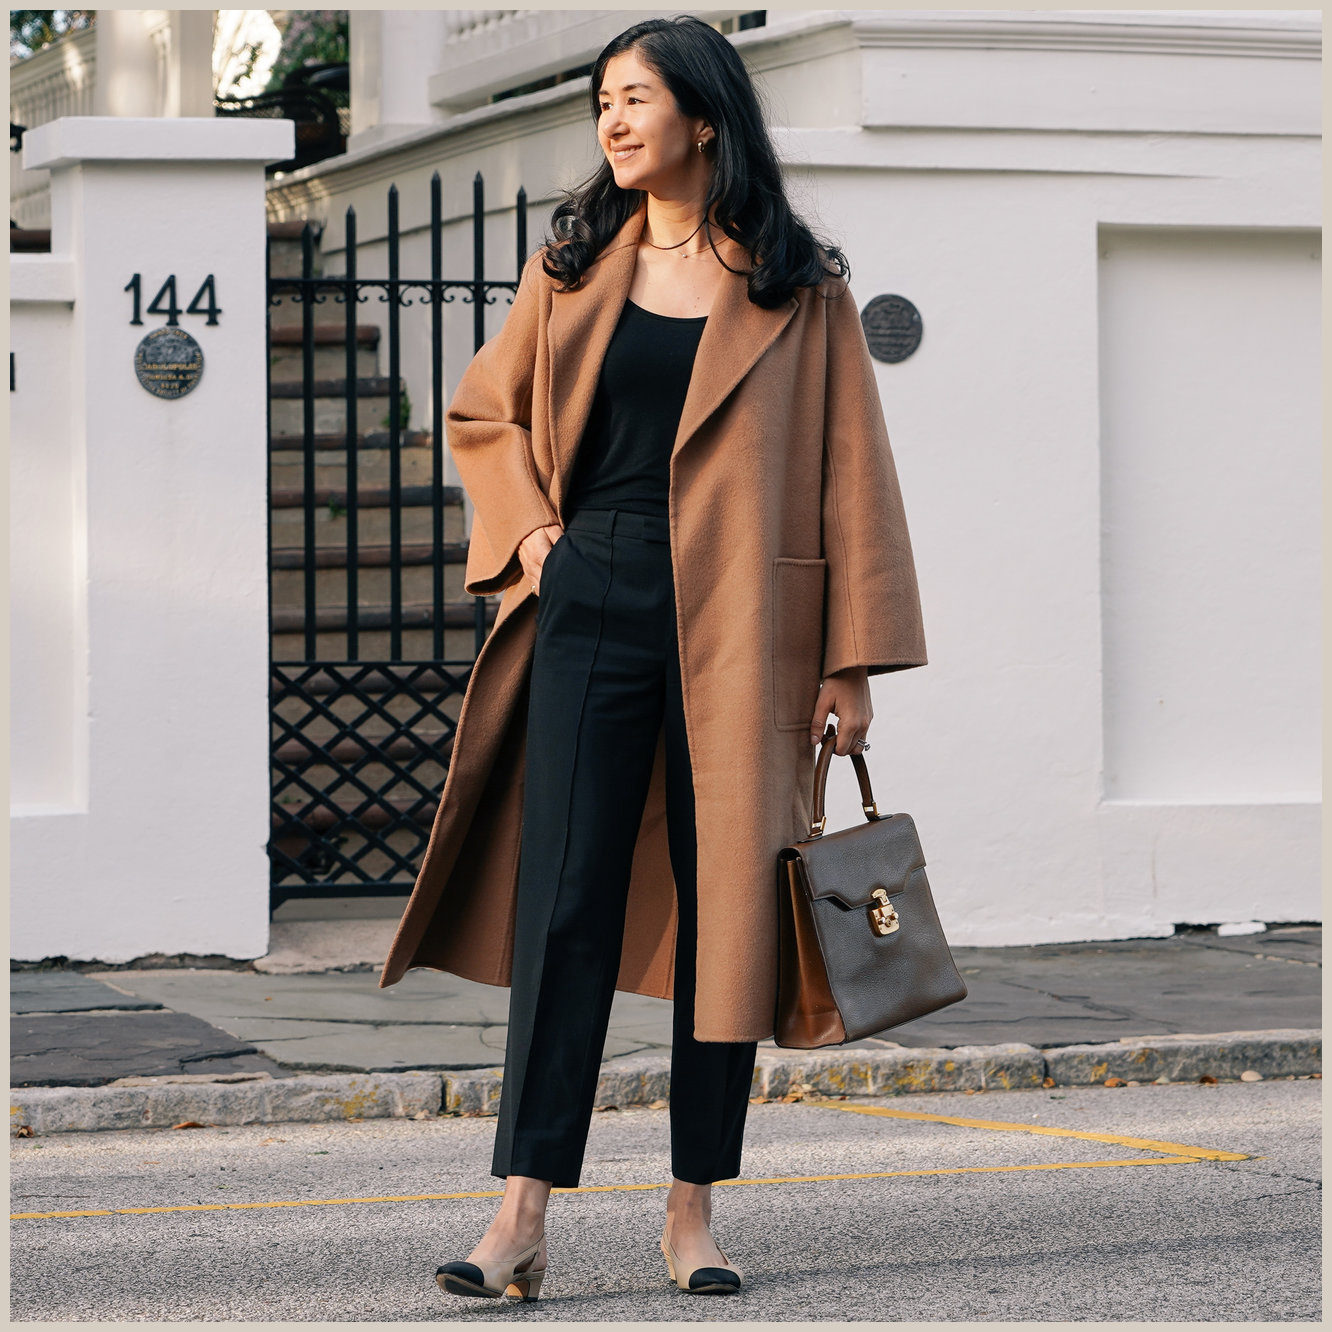 shop-curated-camel-coat-everlane-goweave-pants-vaneli-aliz-ruffs-signet-ring (1) copy.jpg